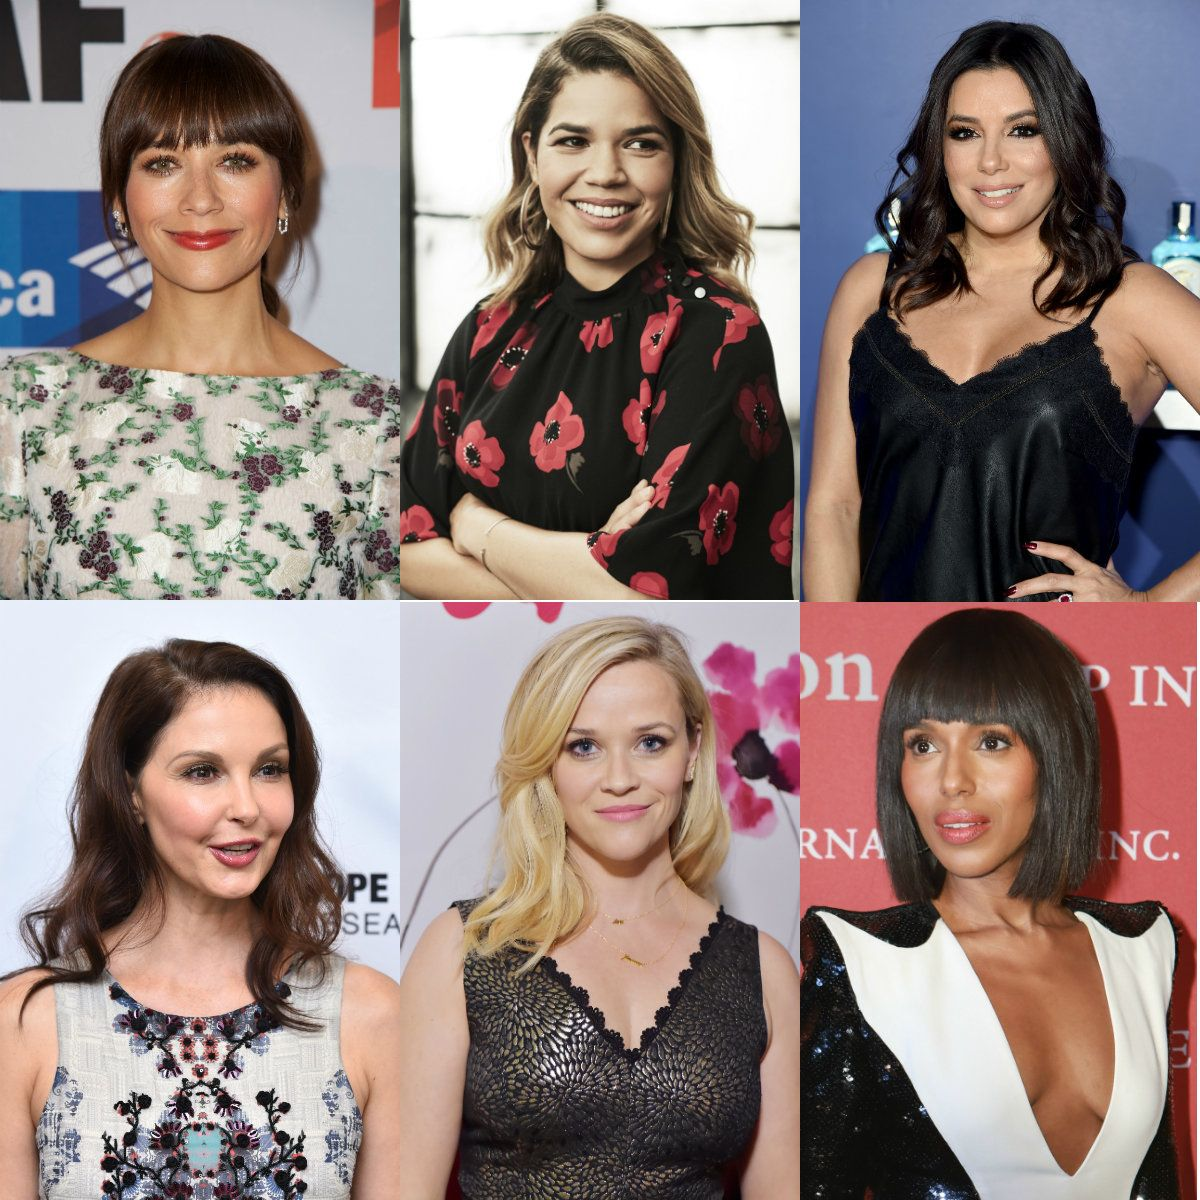 Time's Up: Hollywood women launch campaign to fight sexual harassment